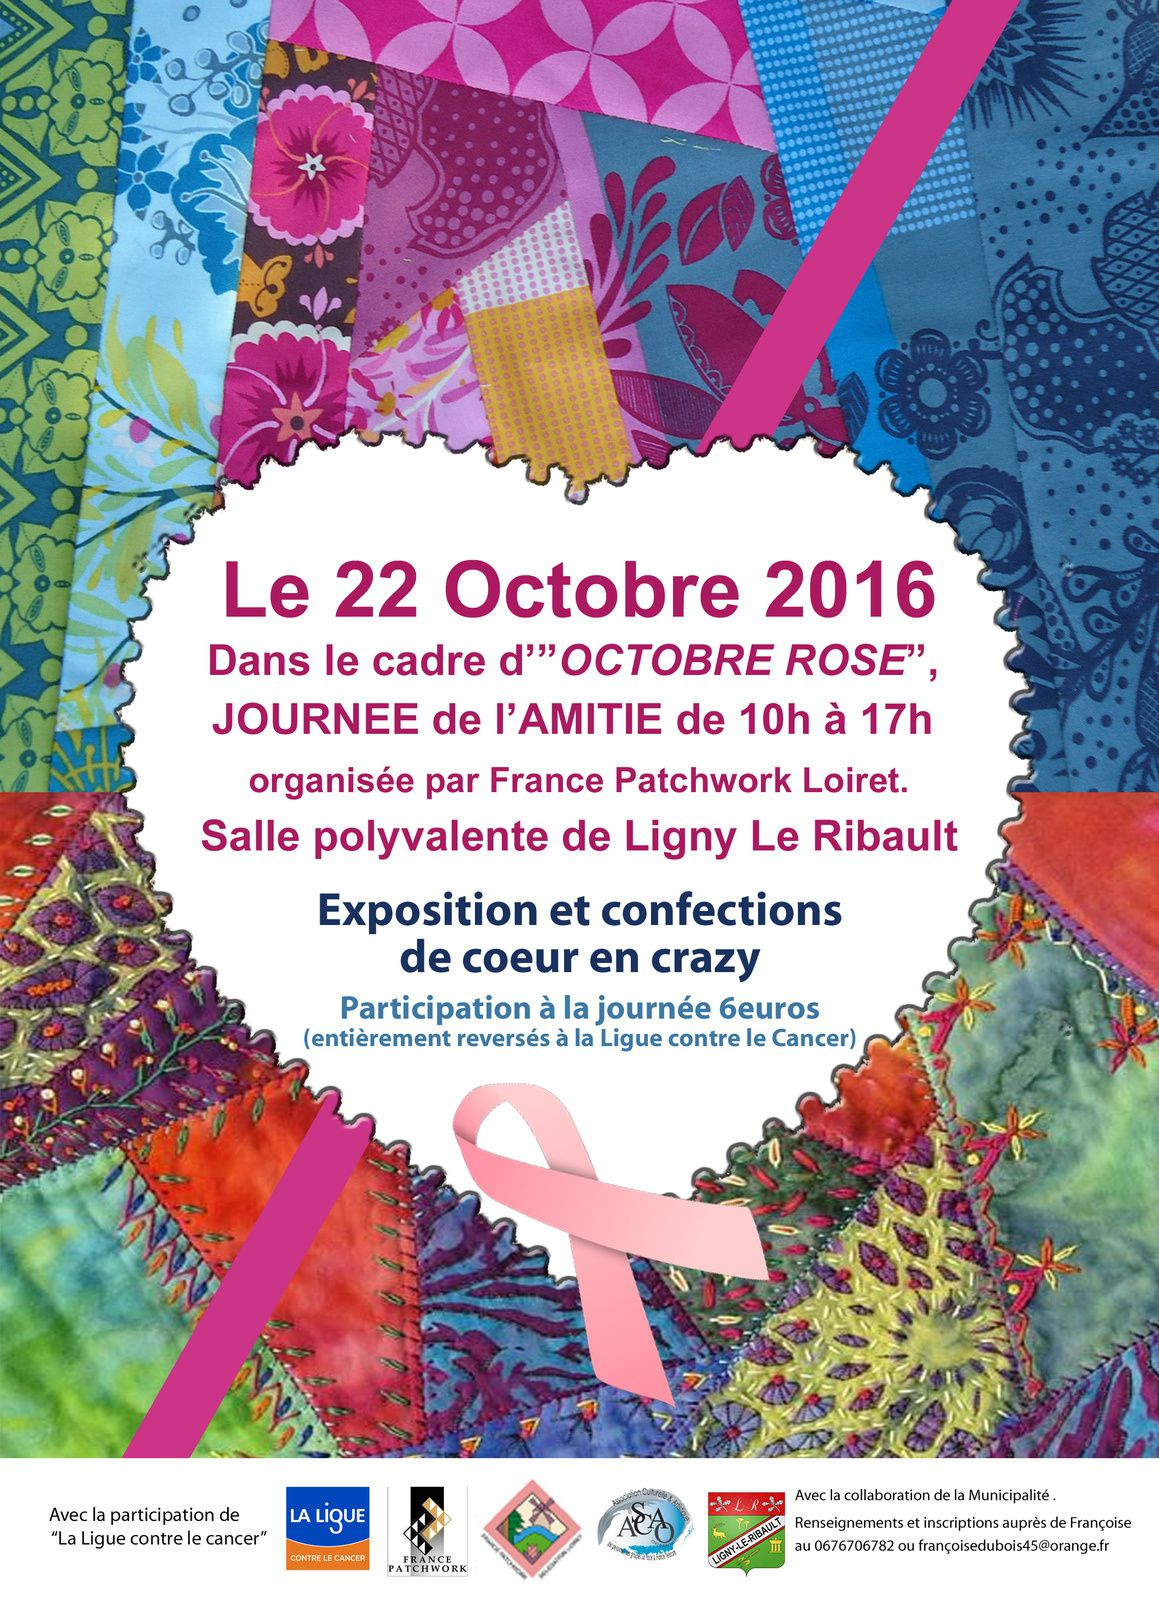 Octobre Rose avec France Patchwork